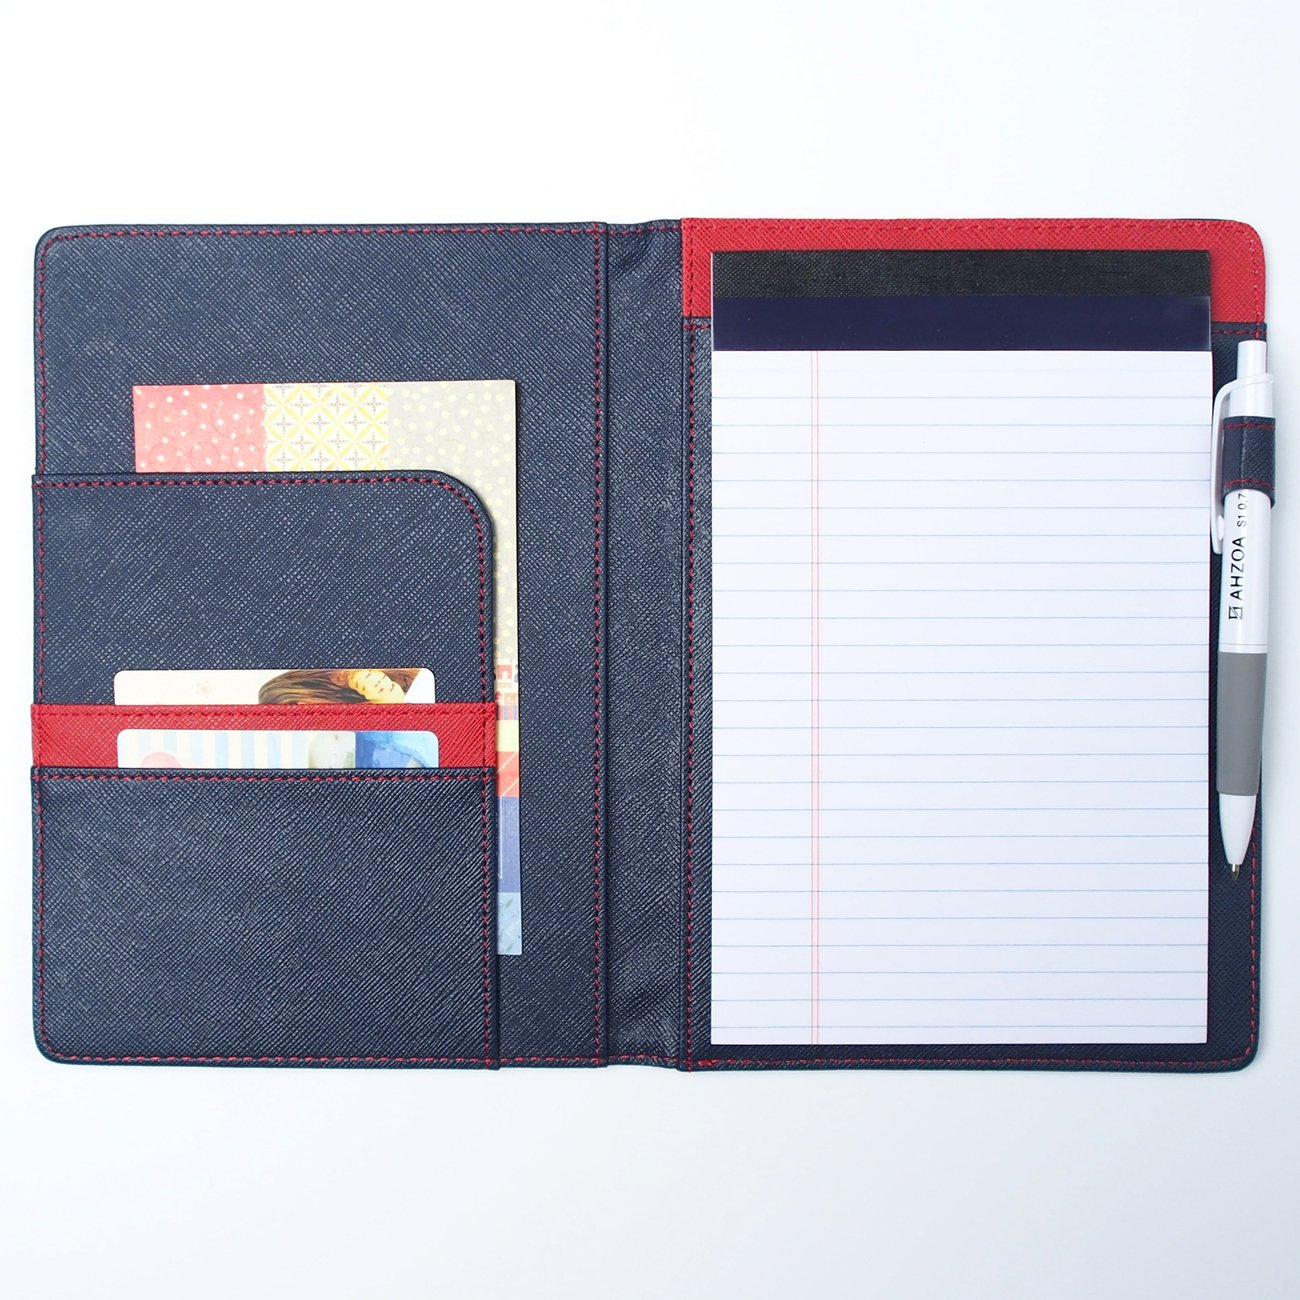 AHZOA 3 Pockets A5 Size Memo Padfolio S7 with Mechanical Pencil, Including 5 X 8 Inch Legal Writing Pad, Synthetic Leather Handmade 6.3 X 8.78 Inch Notepad Clipboard Holder (Navy)